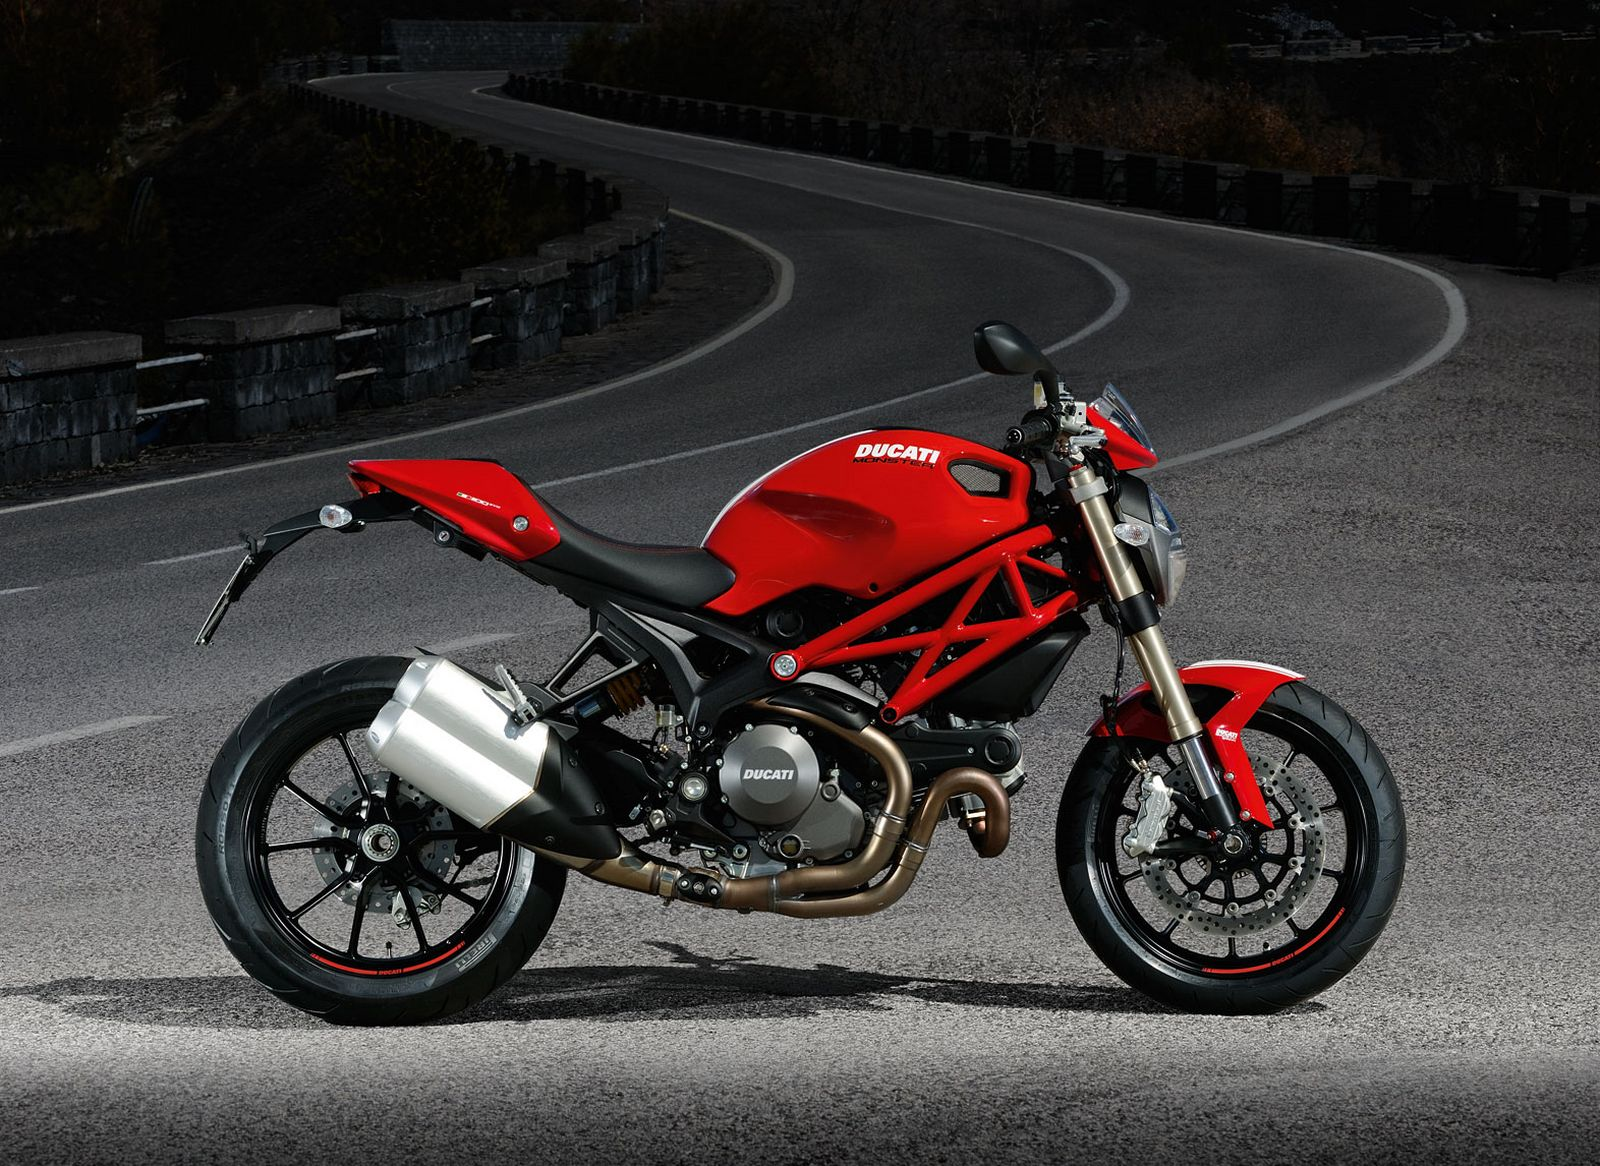 2012 ducati monster 1100 evo review motorcycles. Black Bedroom Furniture Sets. Home Design Ideas